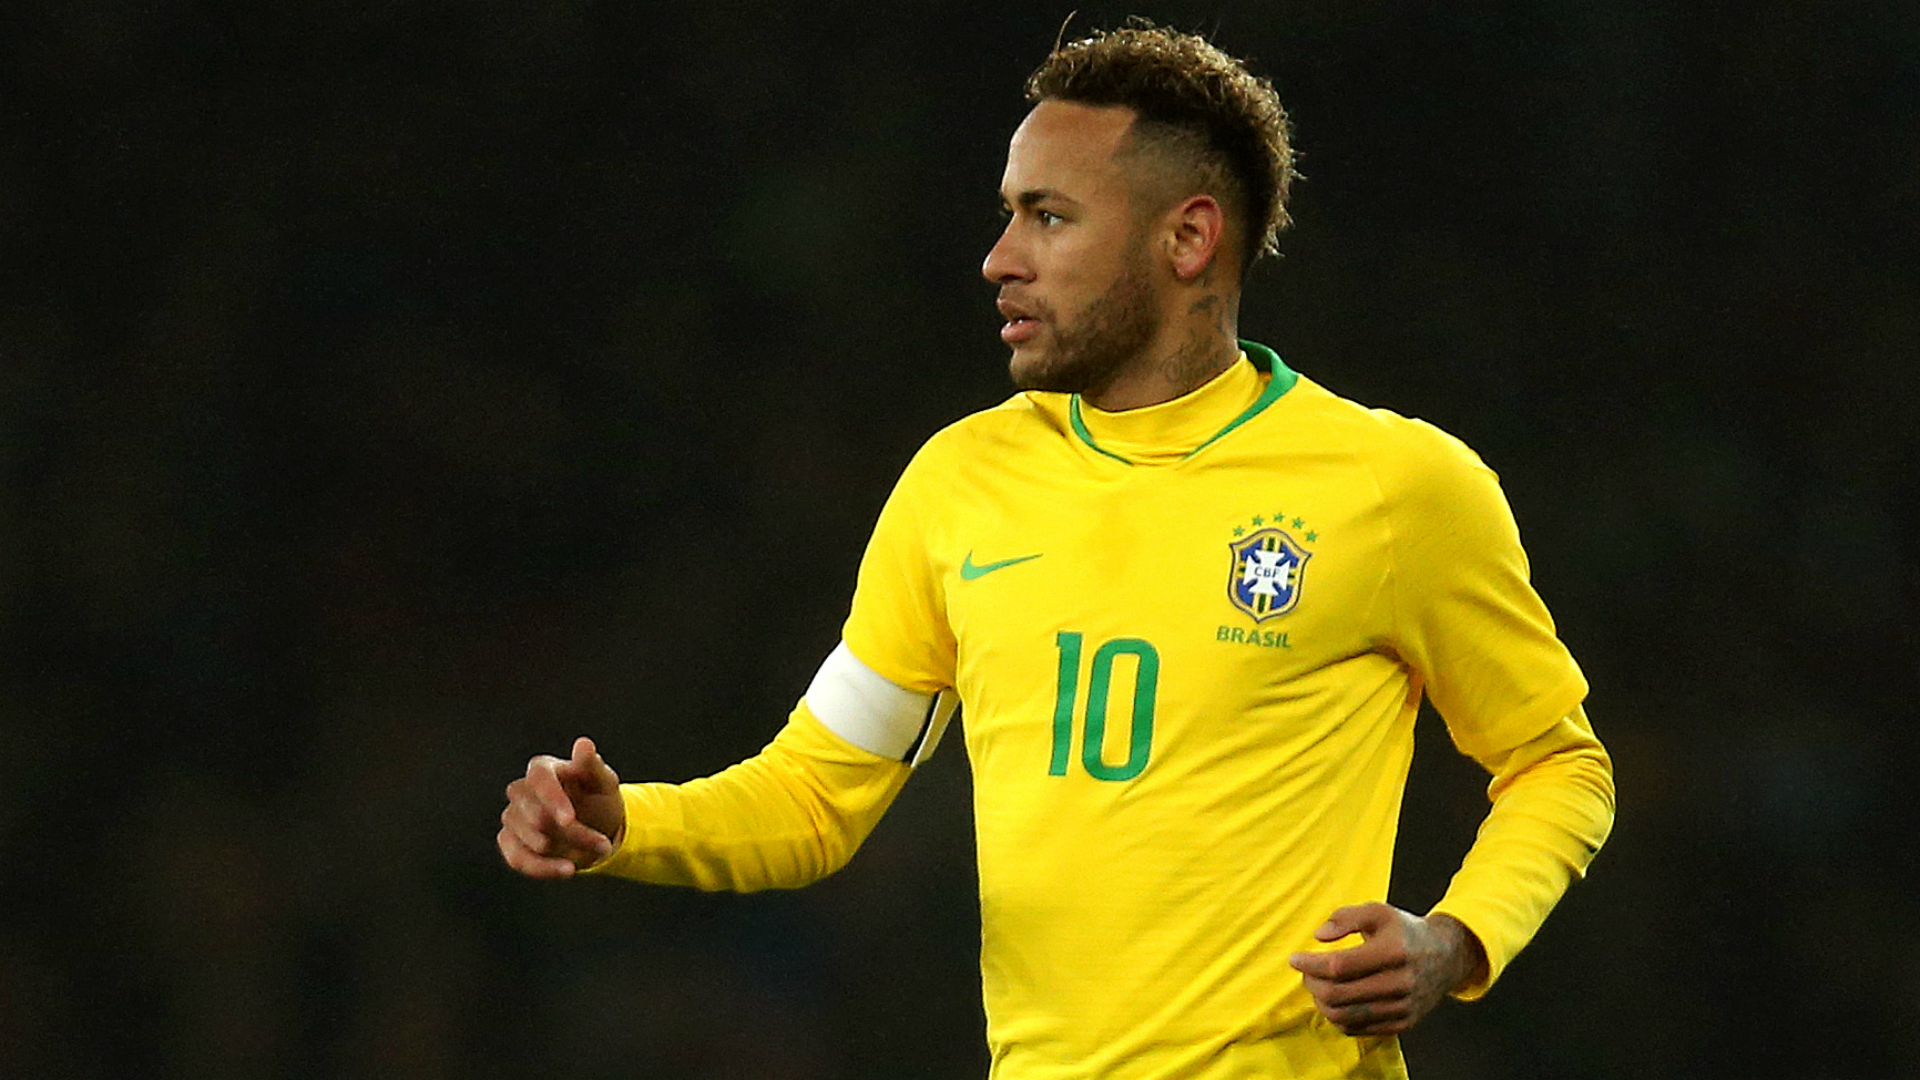 Tearful Neymar carried off with lower leg injury